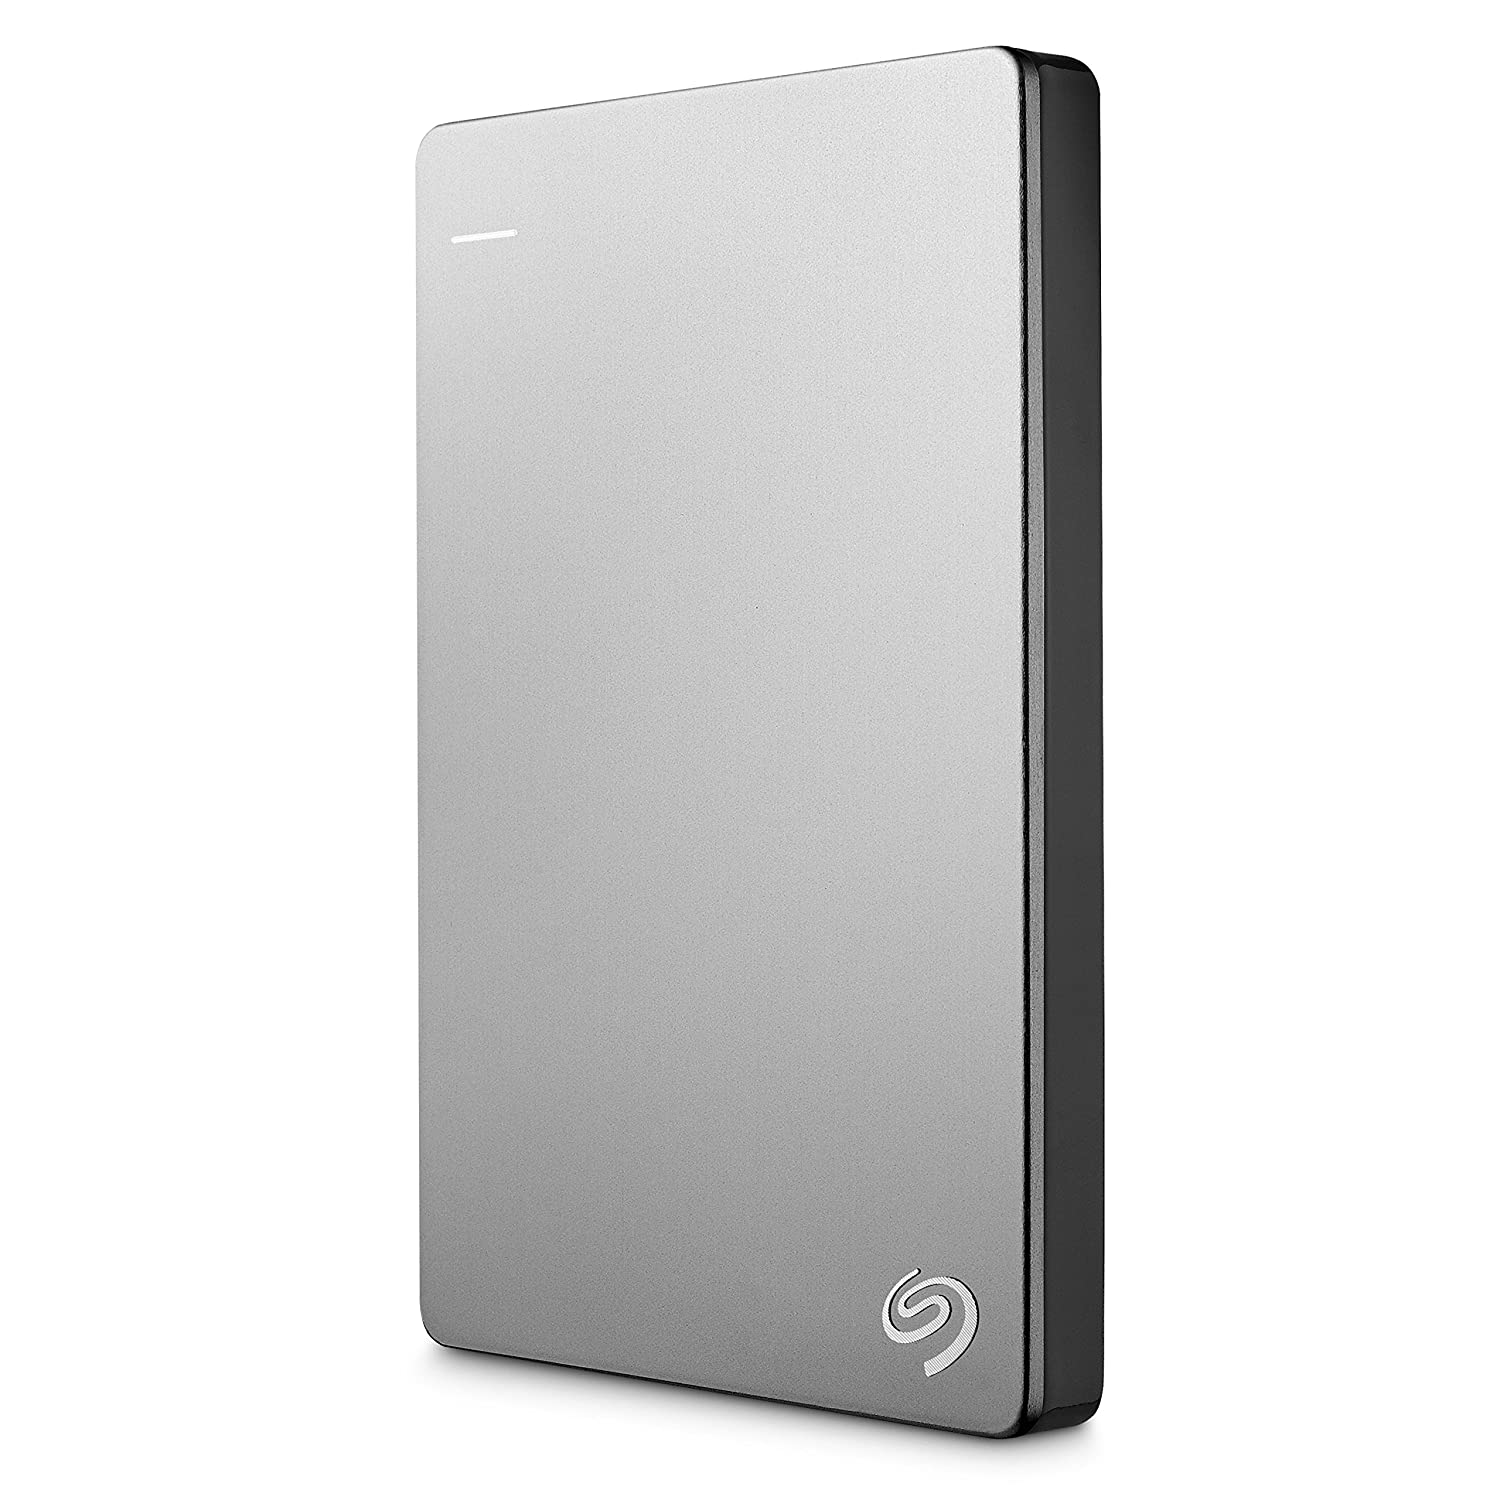 Amazon.com: Seagate Backup Plus Slim for Mac 1TB External Hard Drive